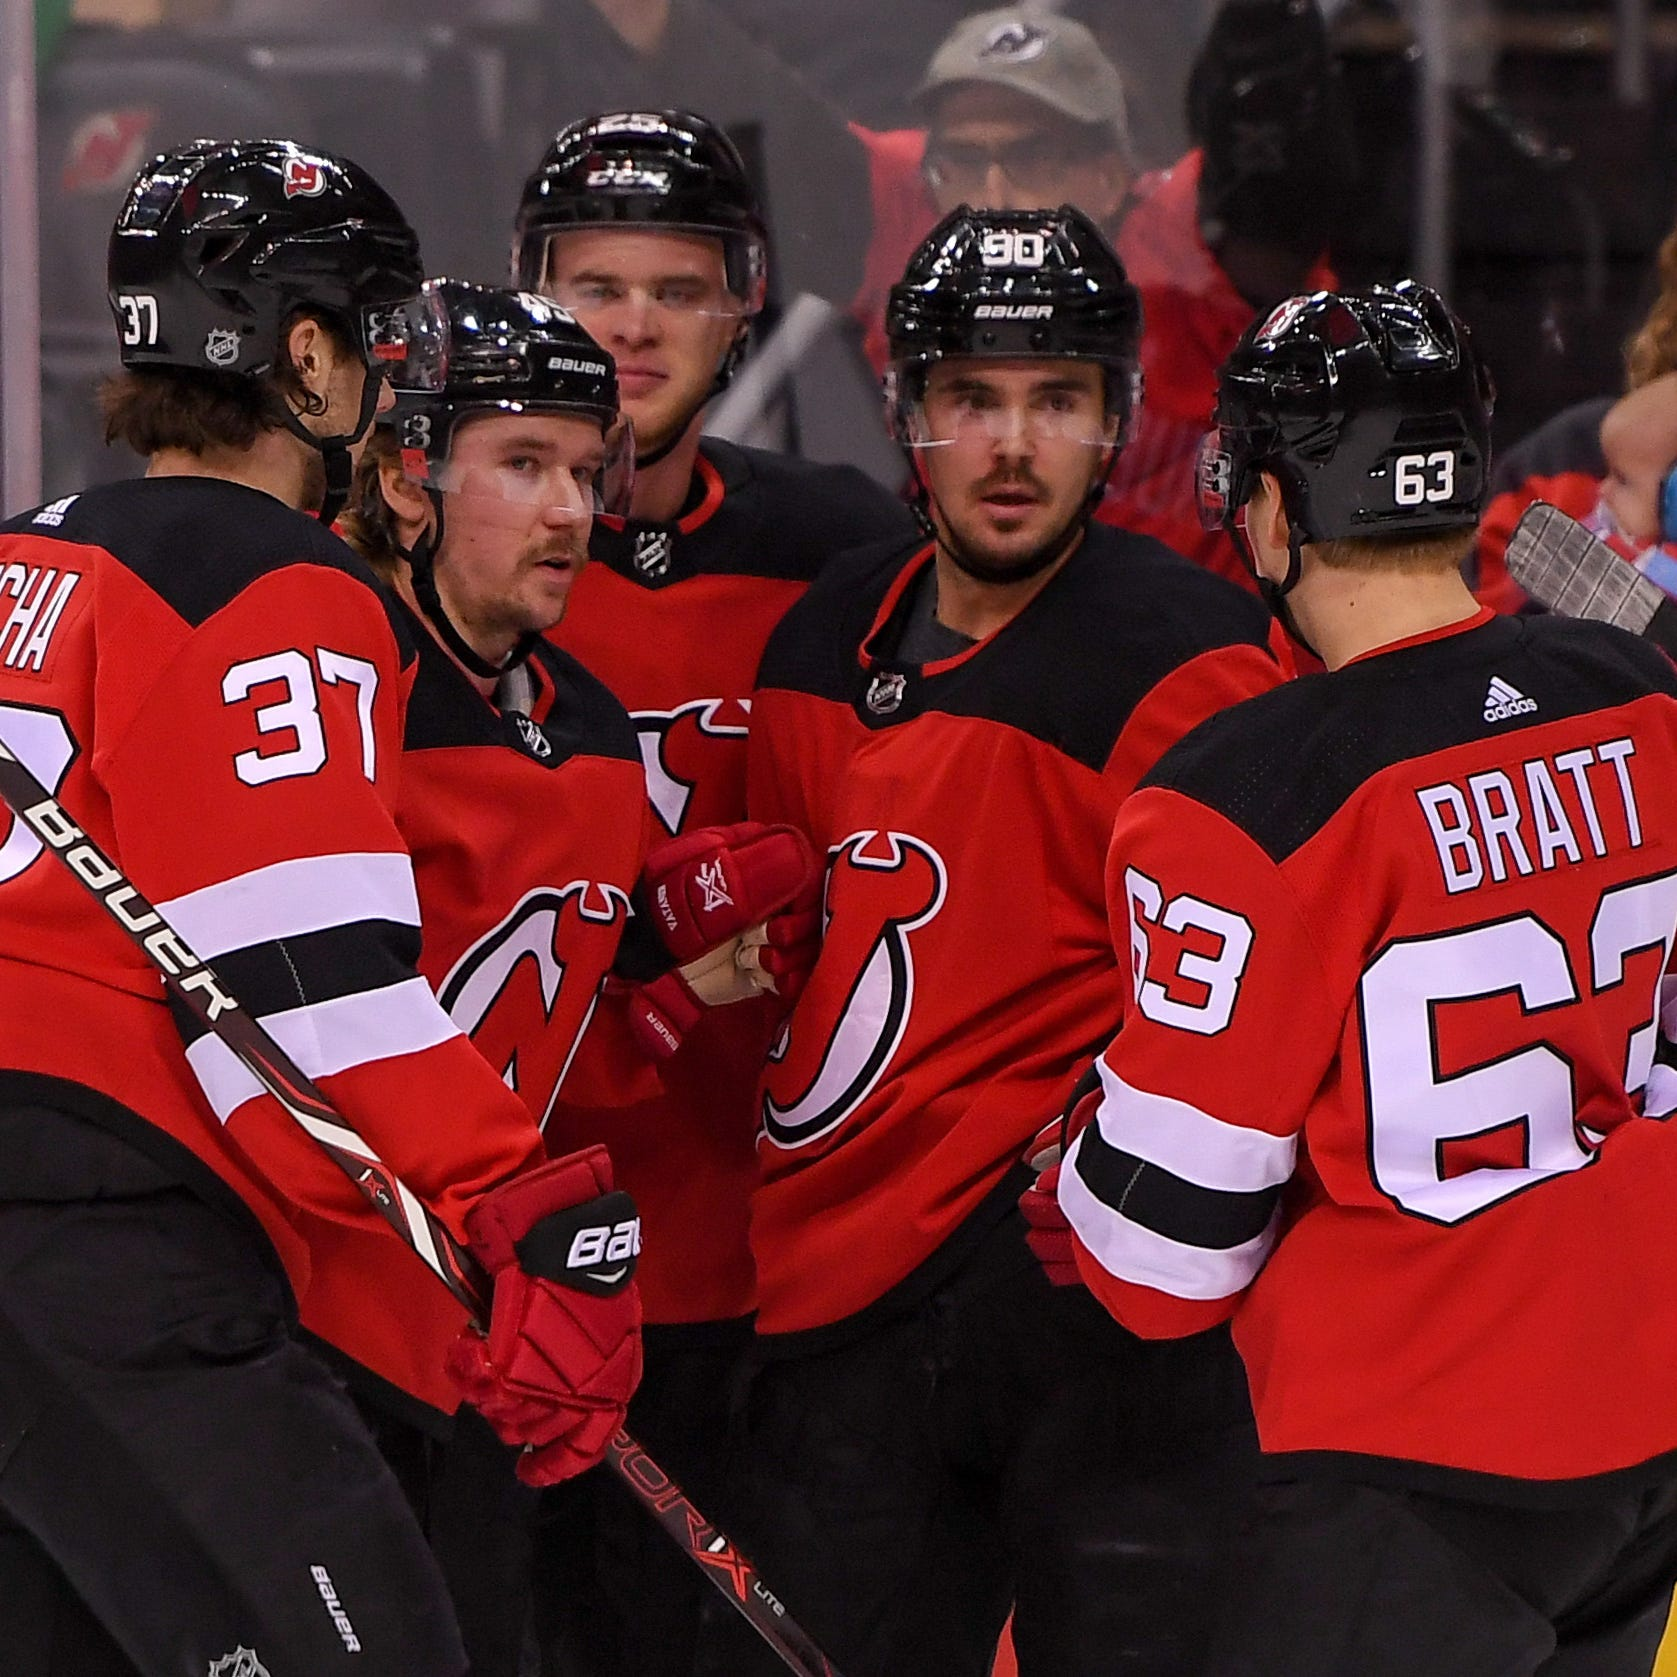 NJ Devils trying to rid themselves of 'passengers' in search for lineup depth